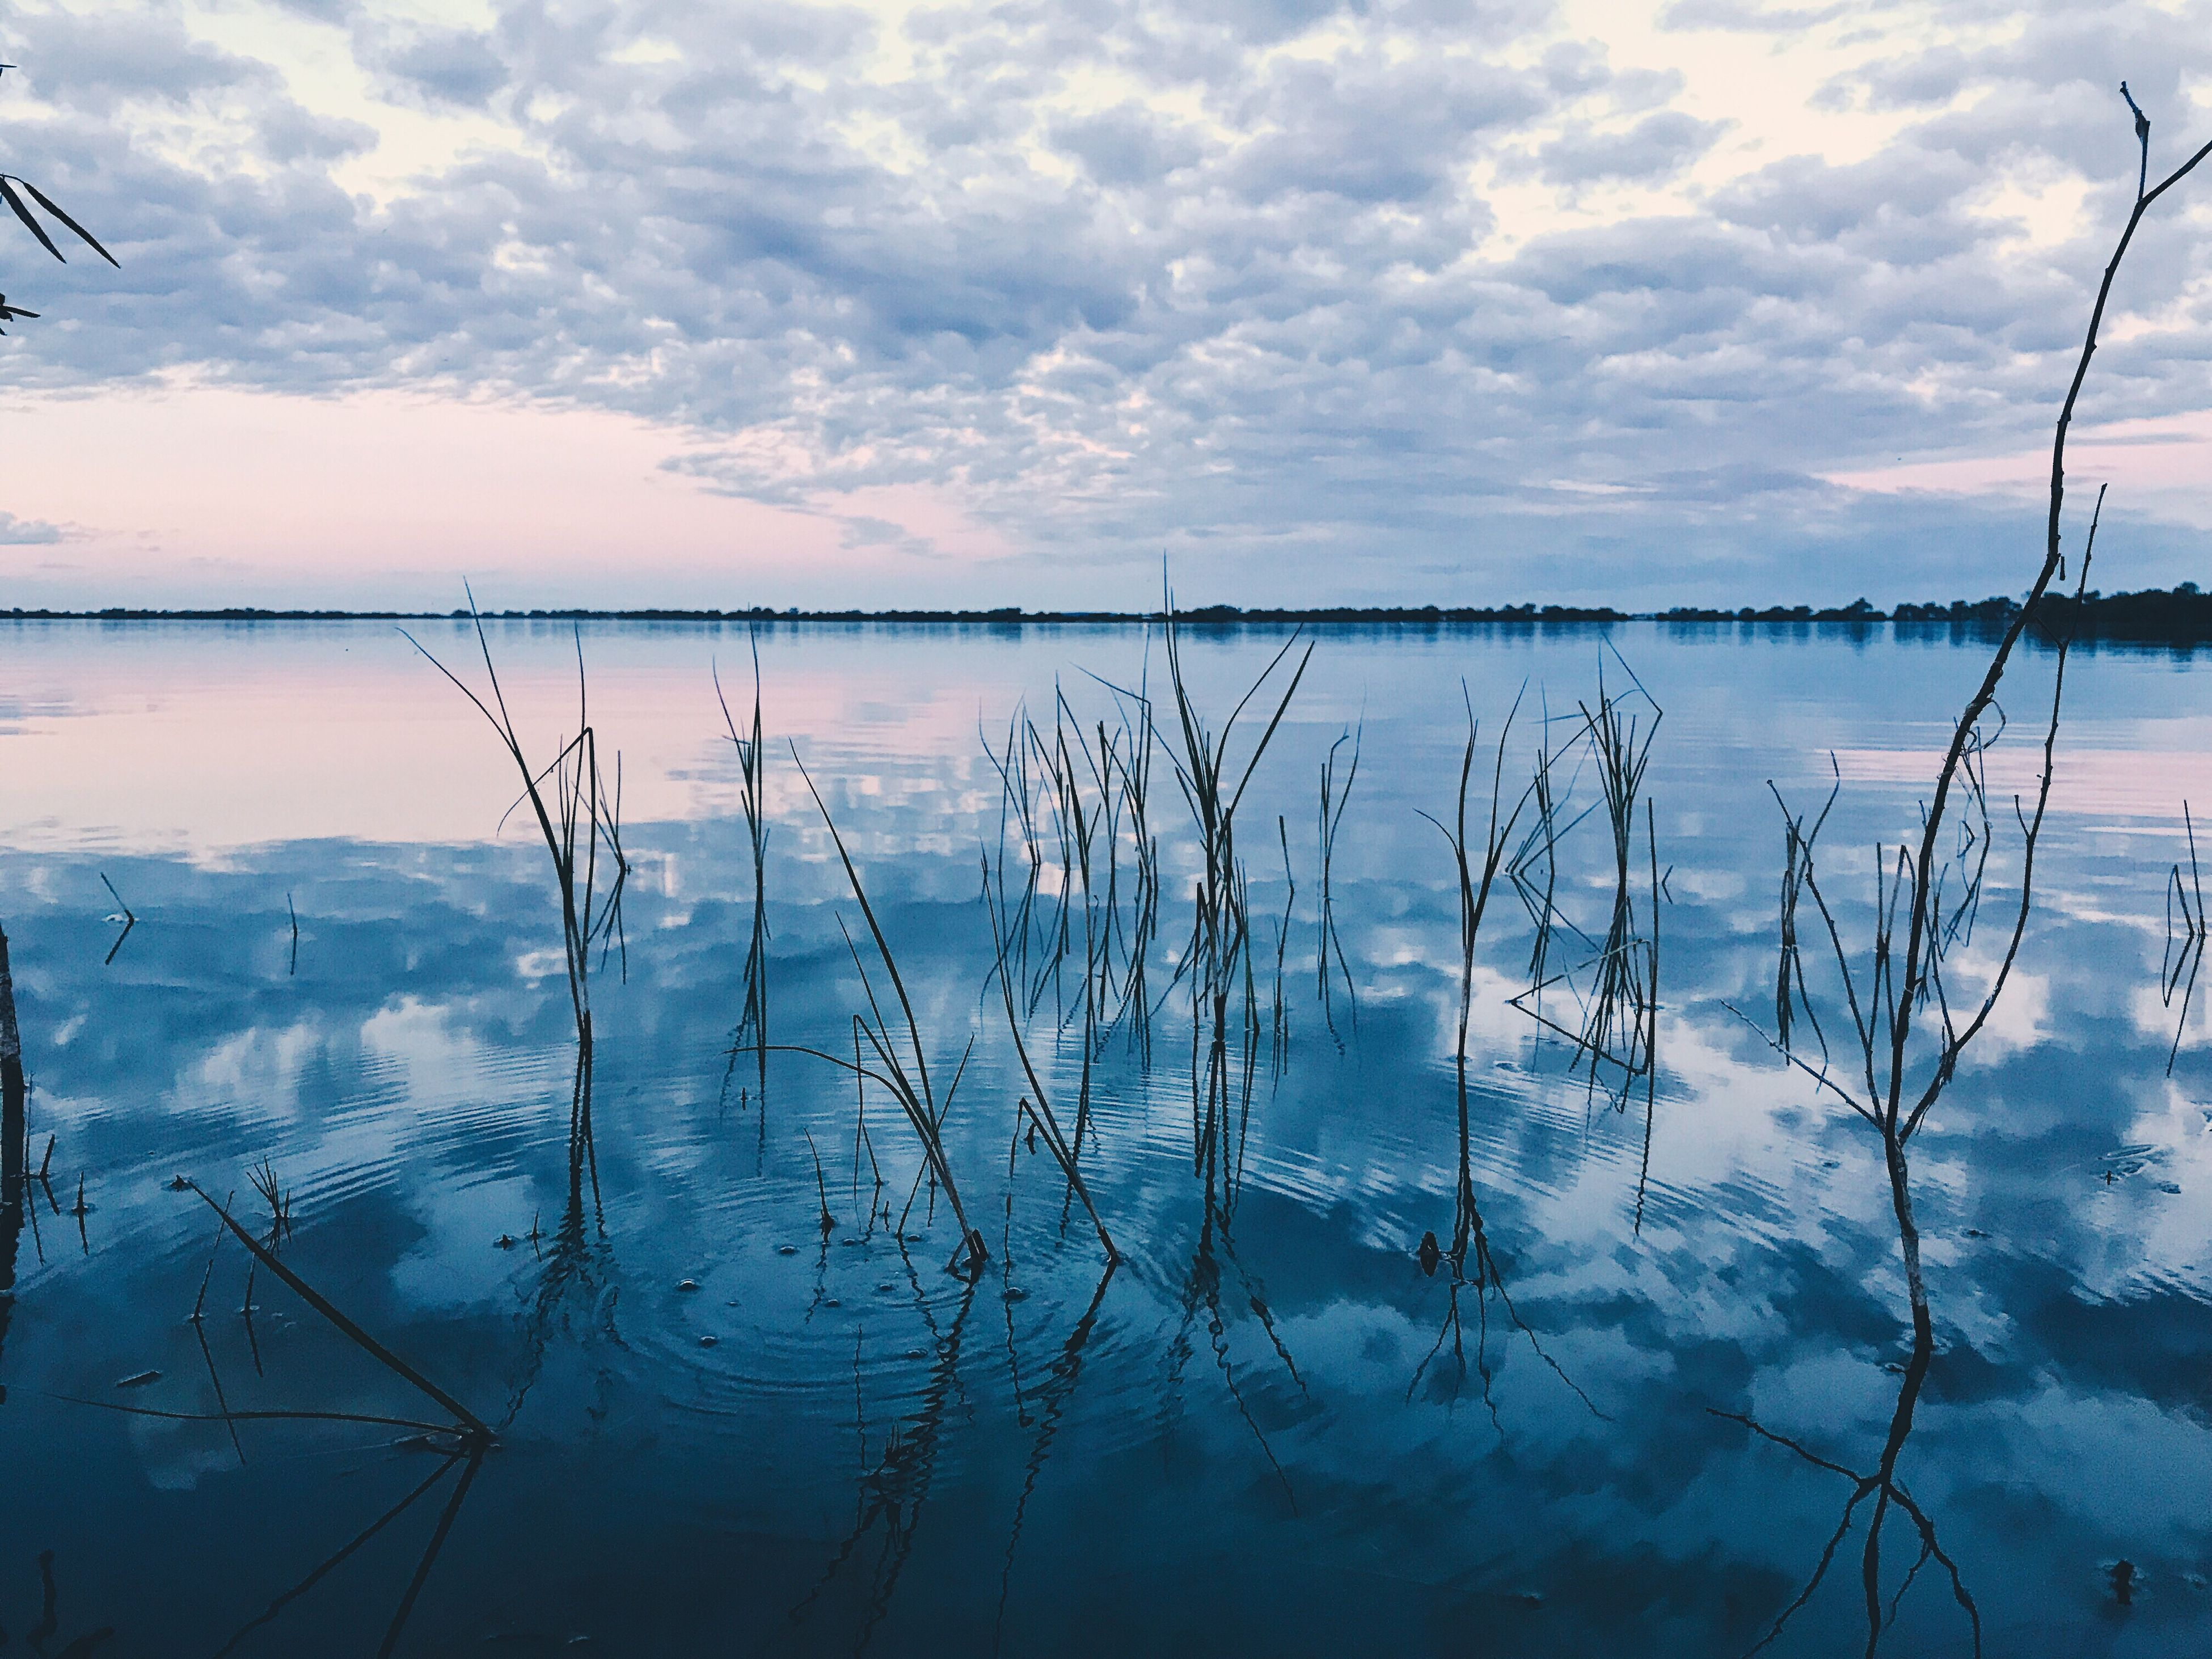 water, reflection, nature, sky, cloud - sky, beauty in nature, tranquility, tranquil scene, lake, no people, outdoors, scenics, day